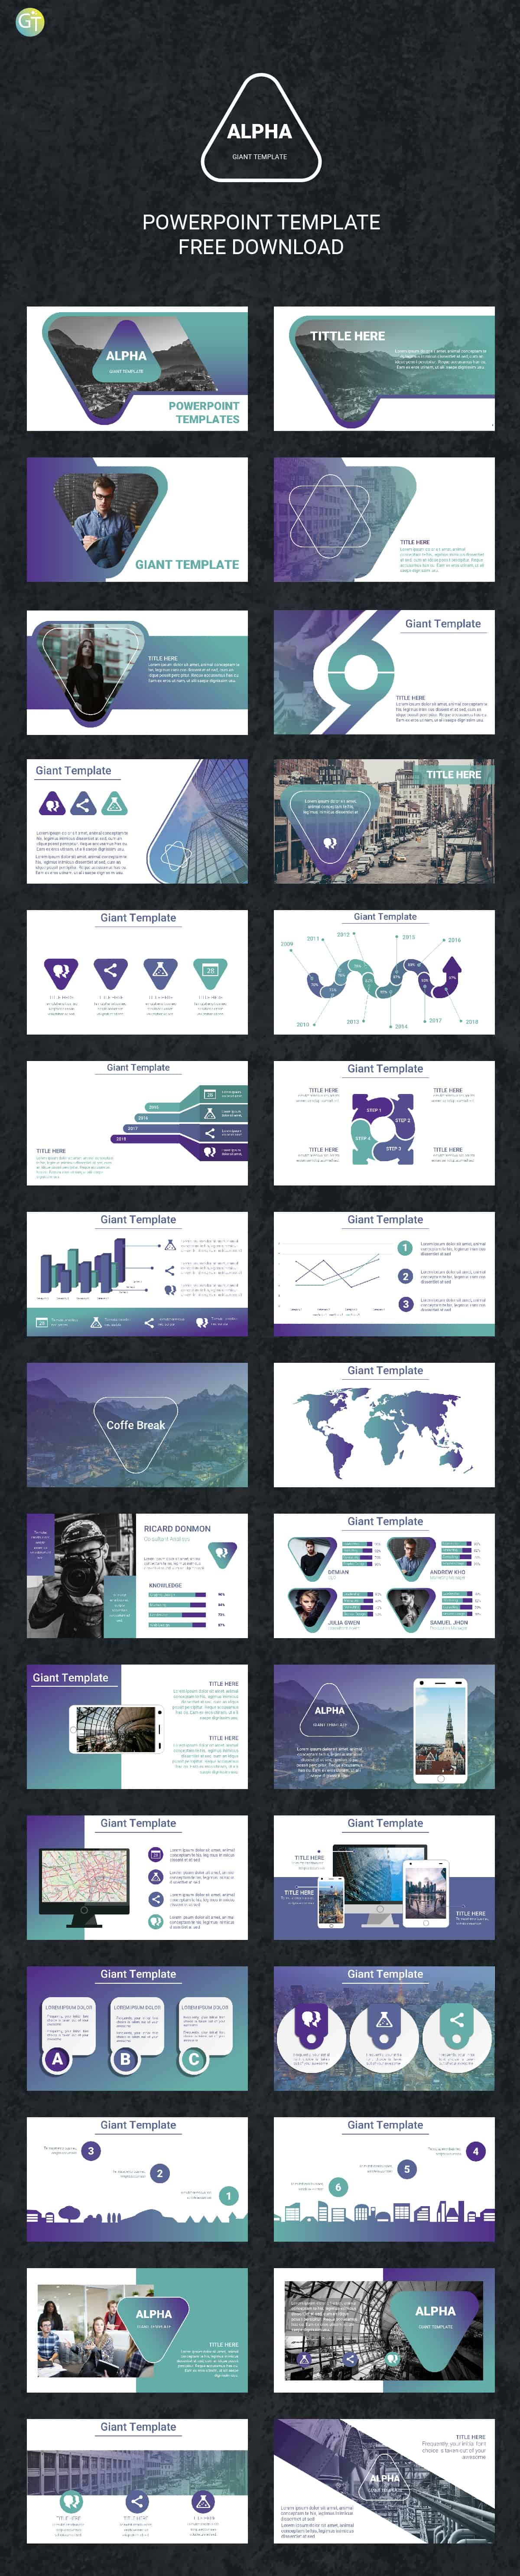 Morph free powerpoint templates 2018